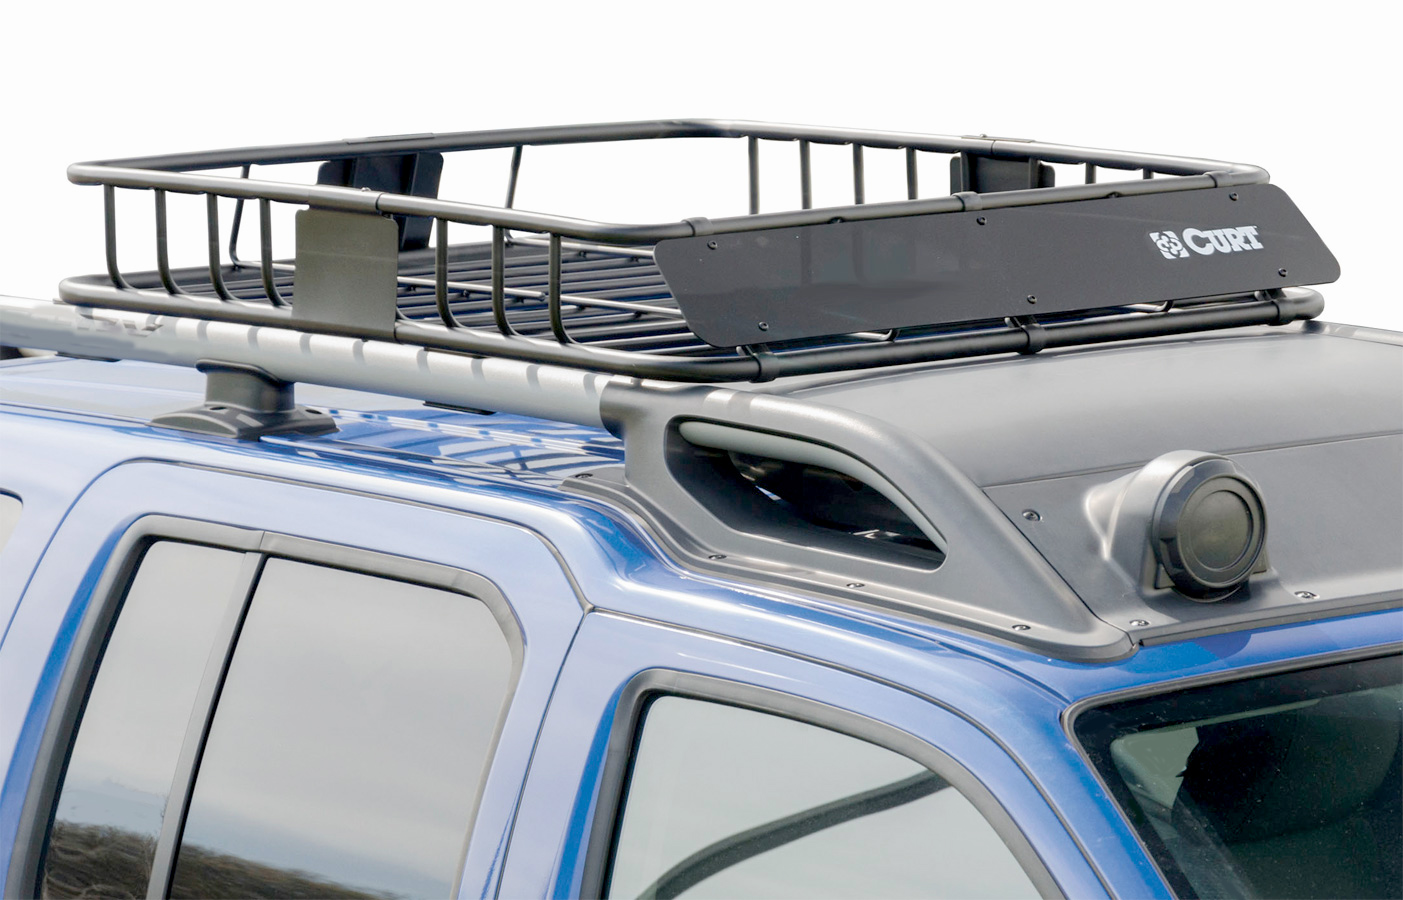 Auto Dakdragers Curt Roof Rack Curt Car Roof Rack Roof Rack Extender